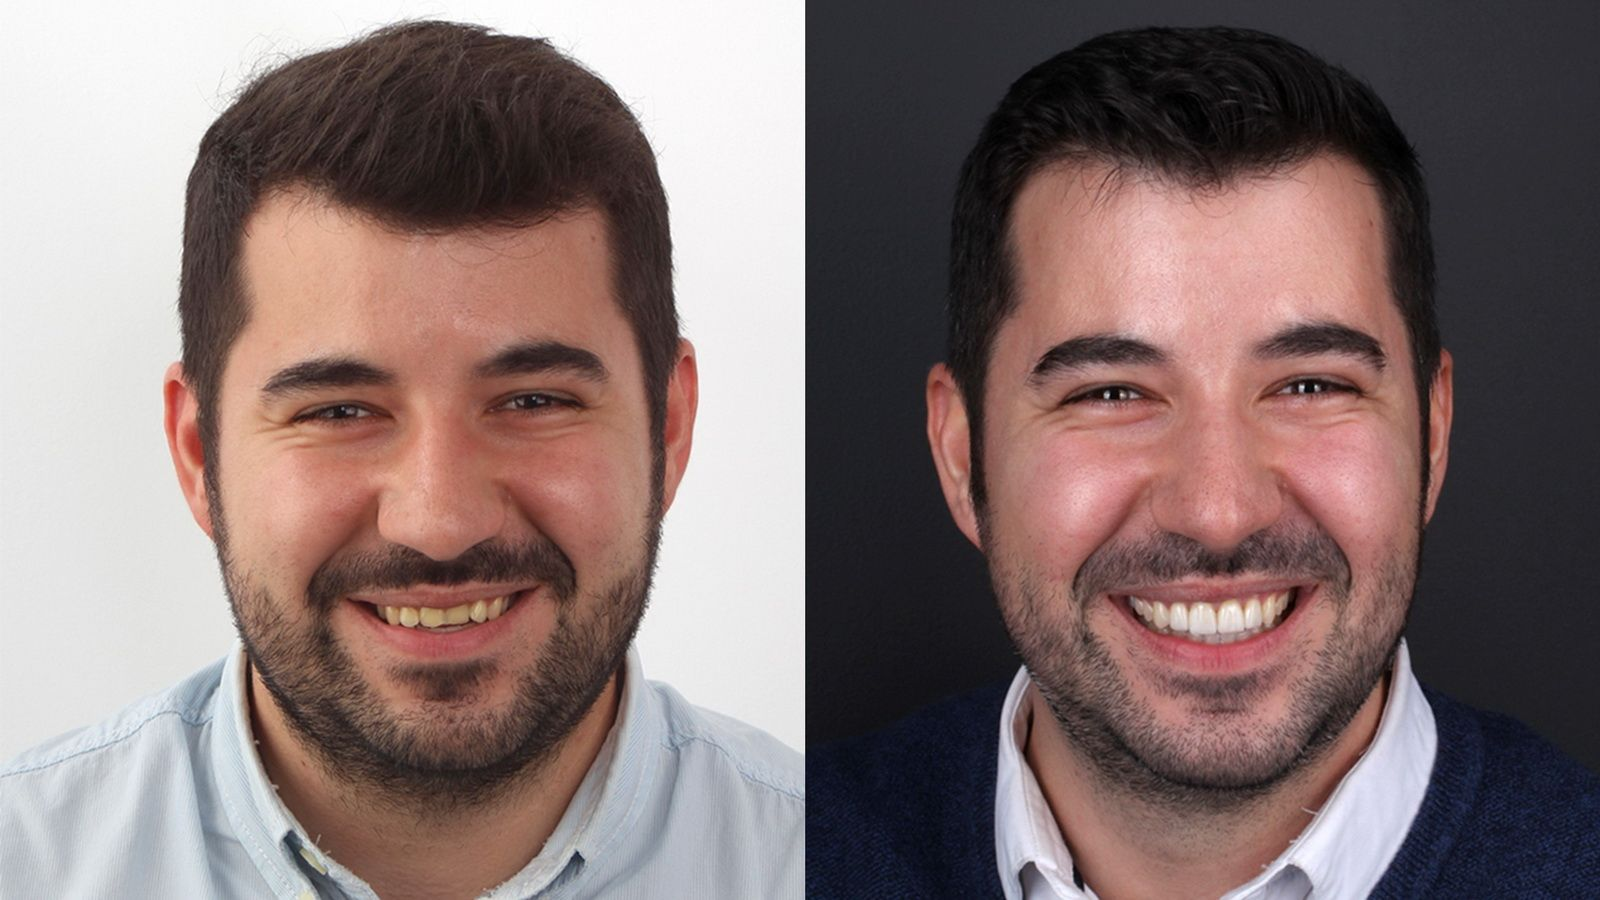 After & Before treatment of porcelain veneers